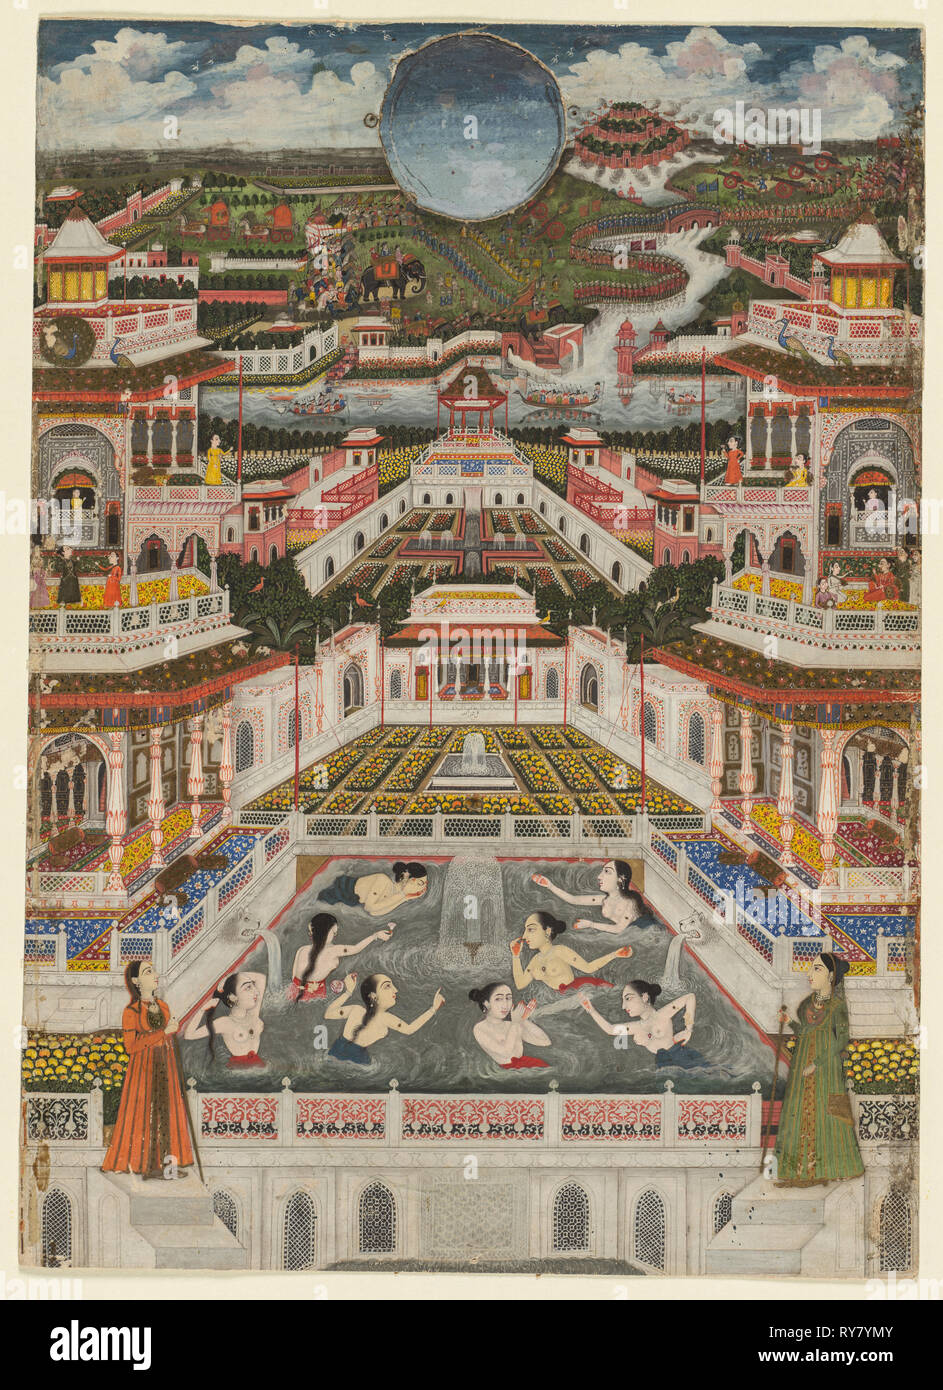 Women bathing before an architectural panorama, c. 1765. Fayzullah (Indian, active c. 1730–1765). Opaque watercolor and gold on paper - Stock Image